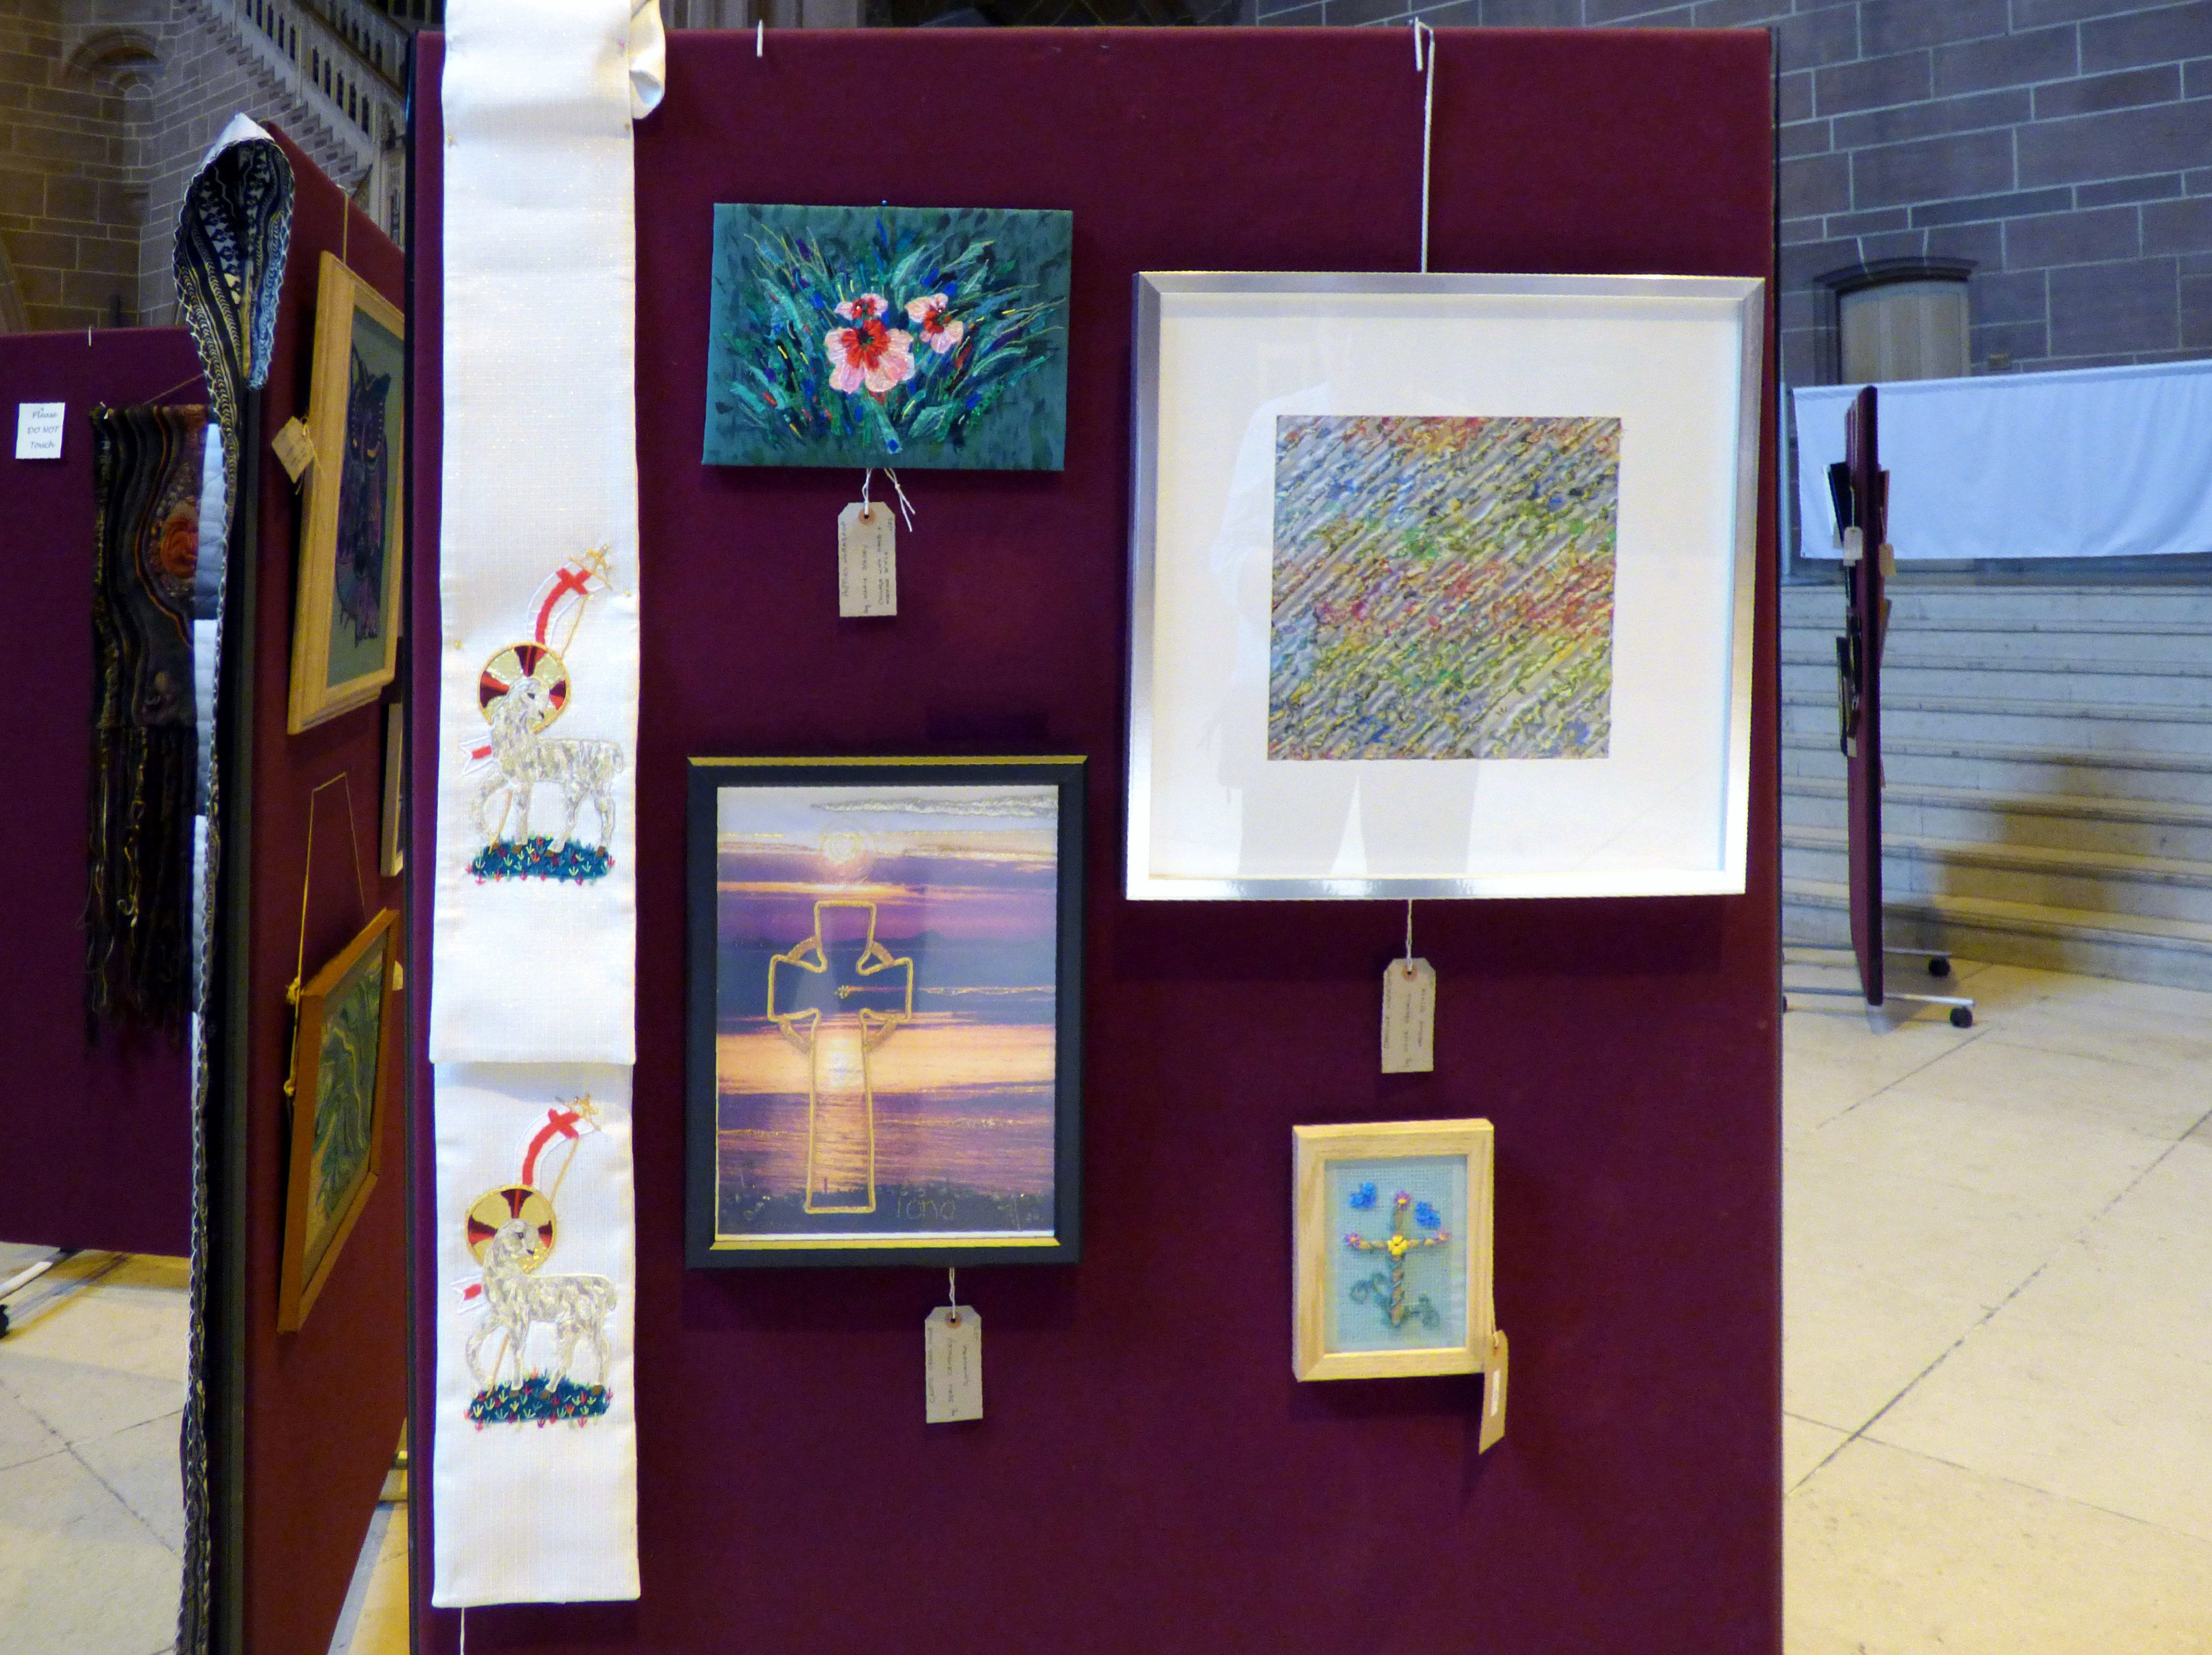 POPPIES WORKSHOP by Marie Stacey, CHENILLE WORKSHOP by olive Halsall, EASTER STOLE by David Peglar, CELTIC CROSS IONA by Jean Critchley and CROSS by Ann Thyer at 60 Glorious Years exhibition 2016